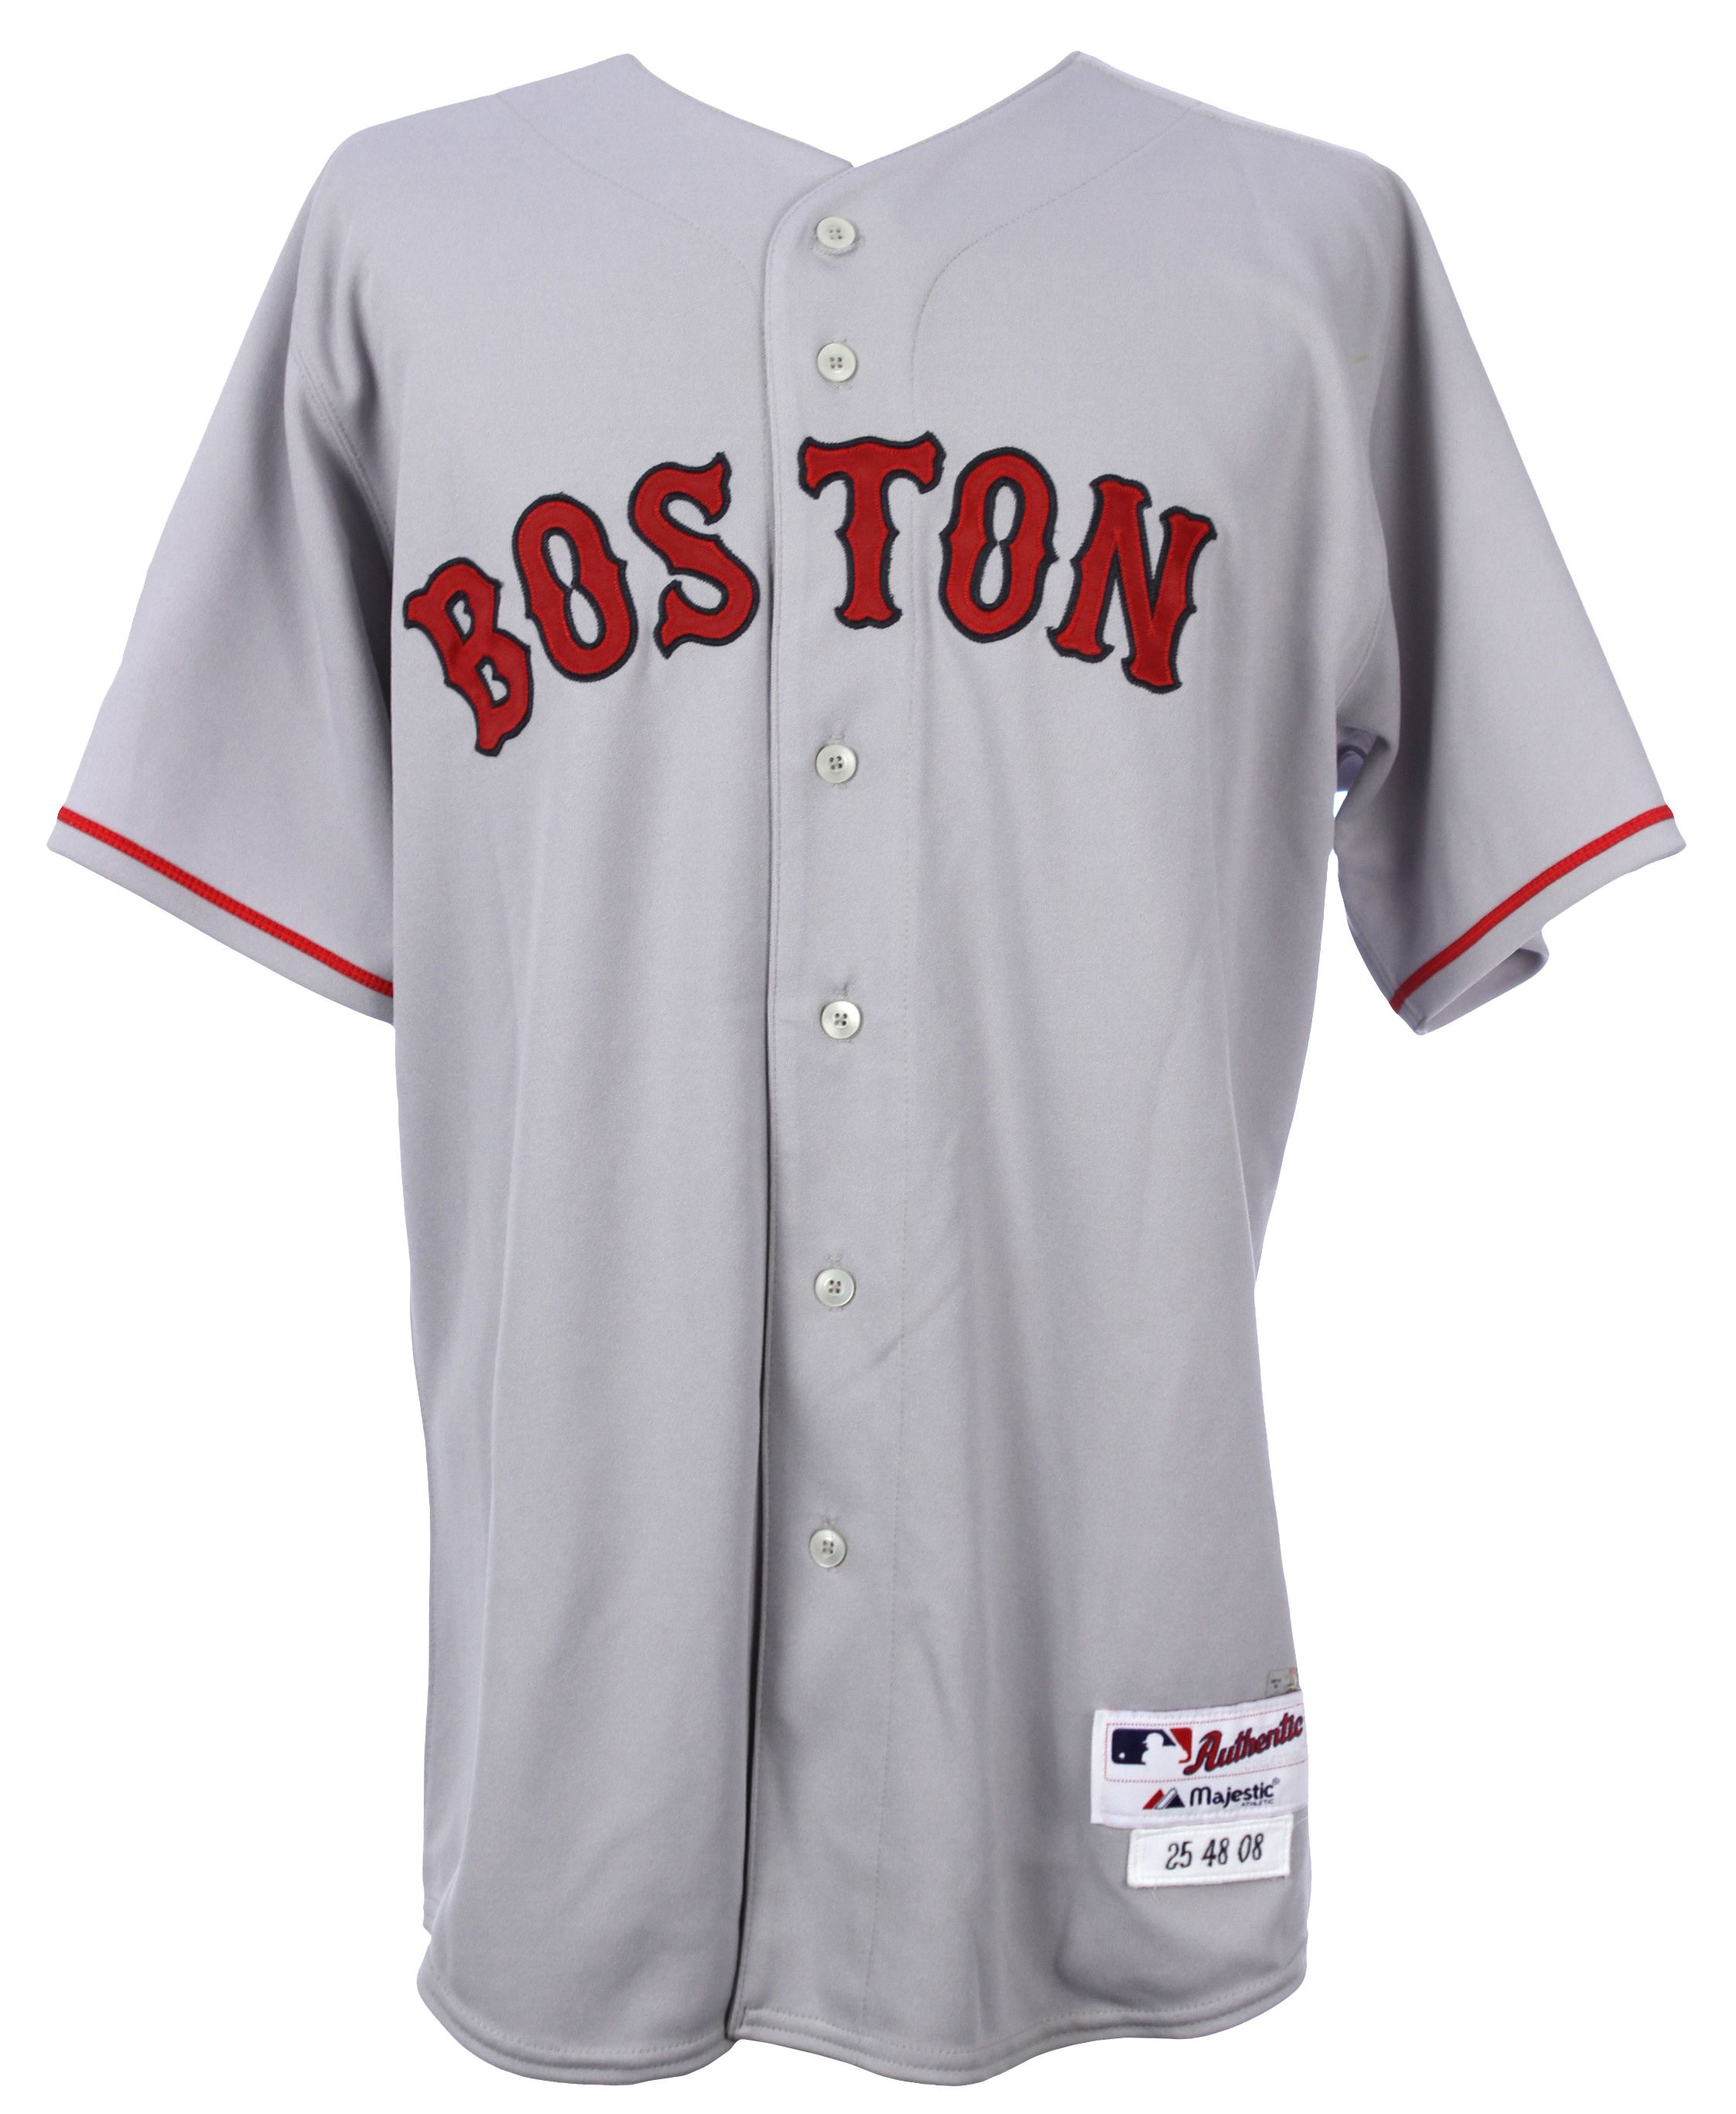 lot detail 2008 mike lowell boston red sox game worn road jersey rh mearsonlineauctions com